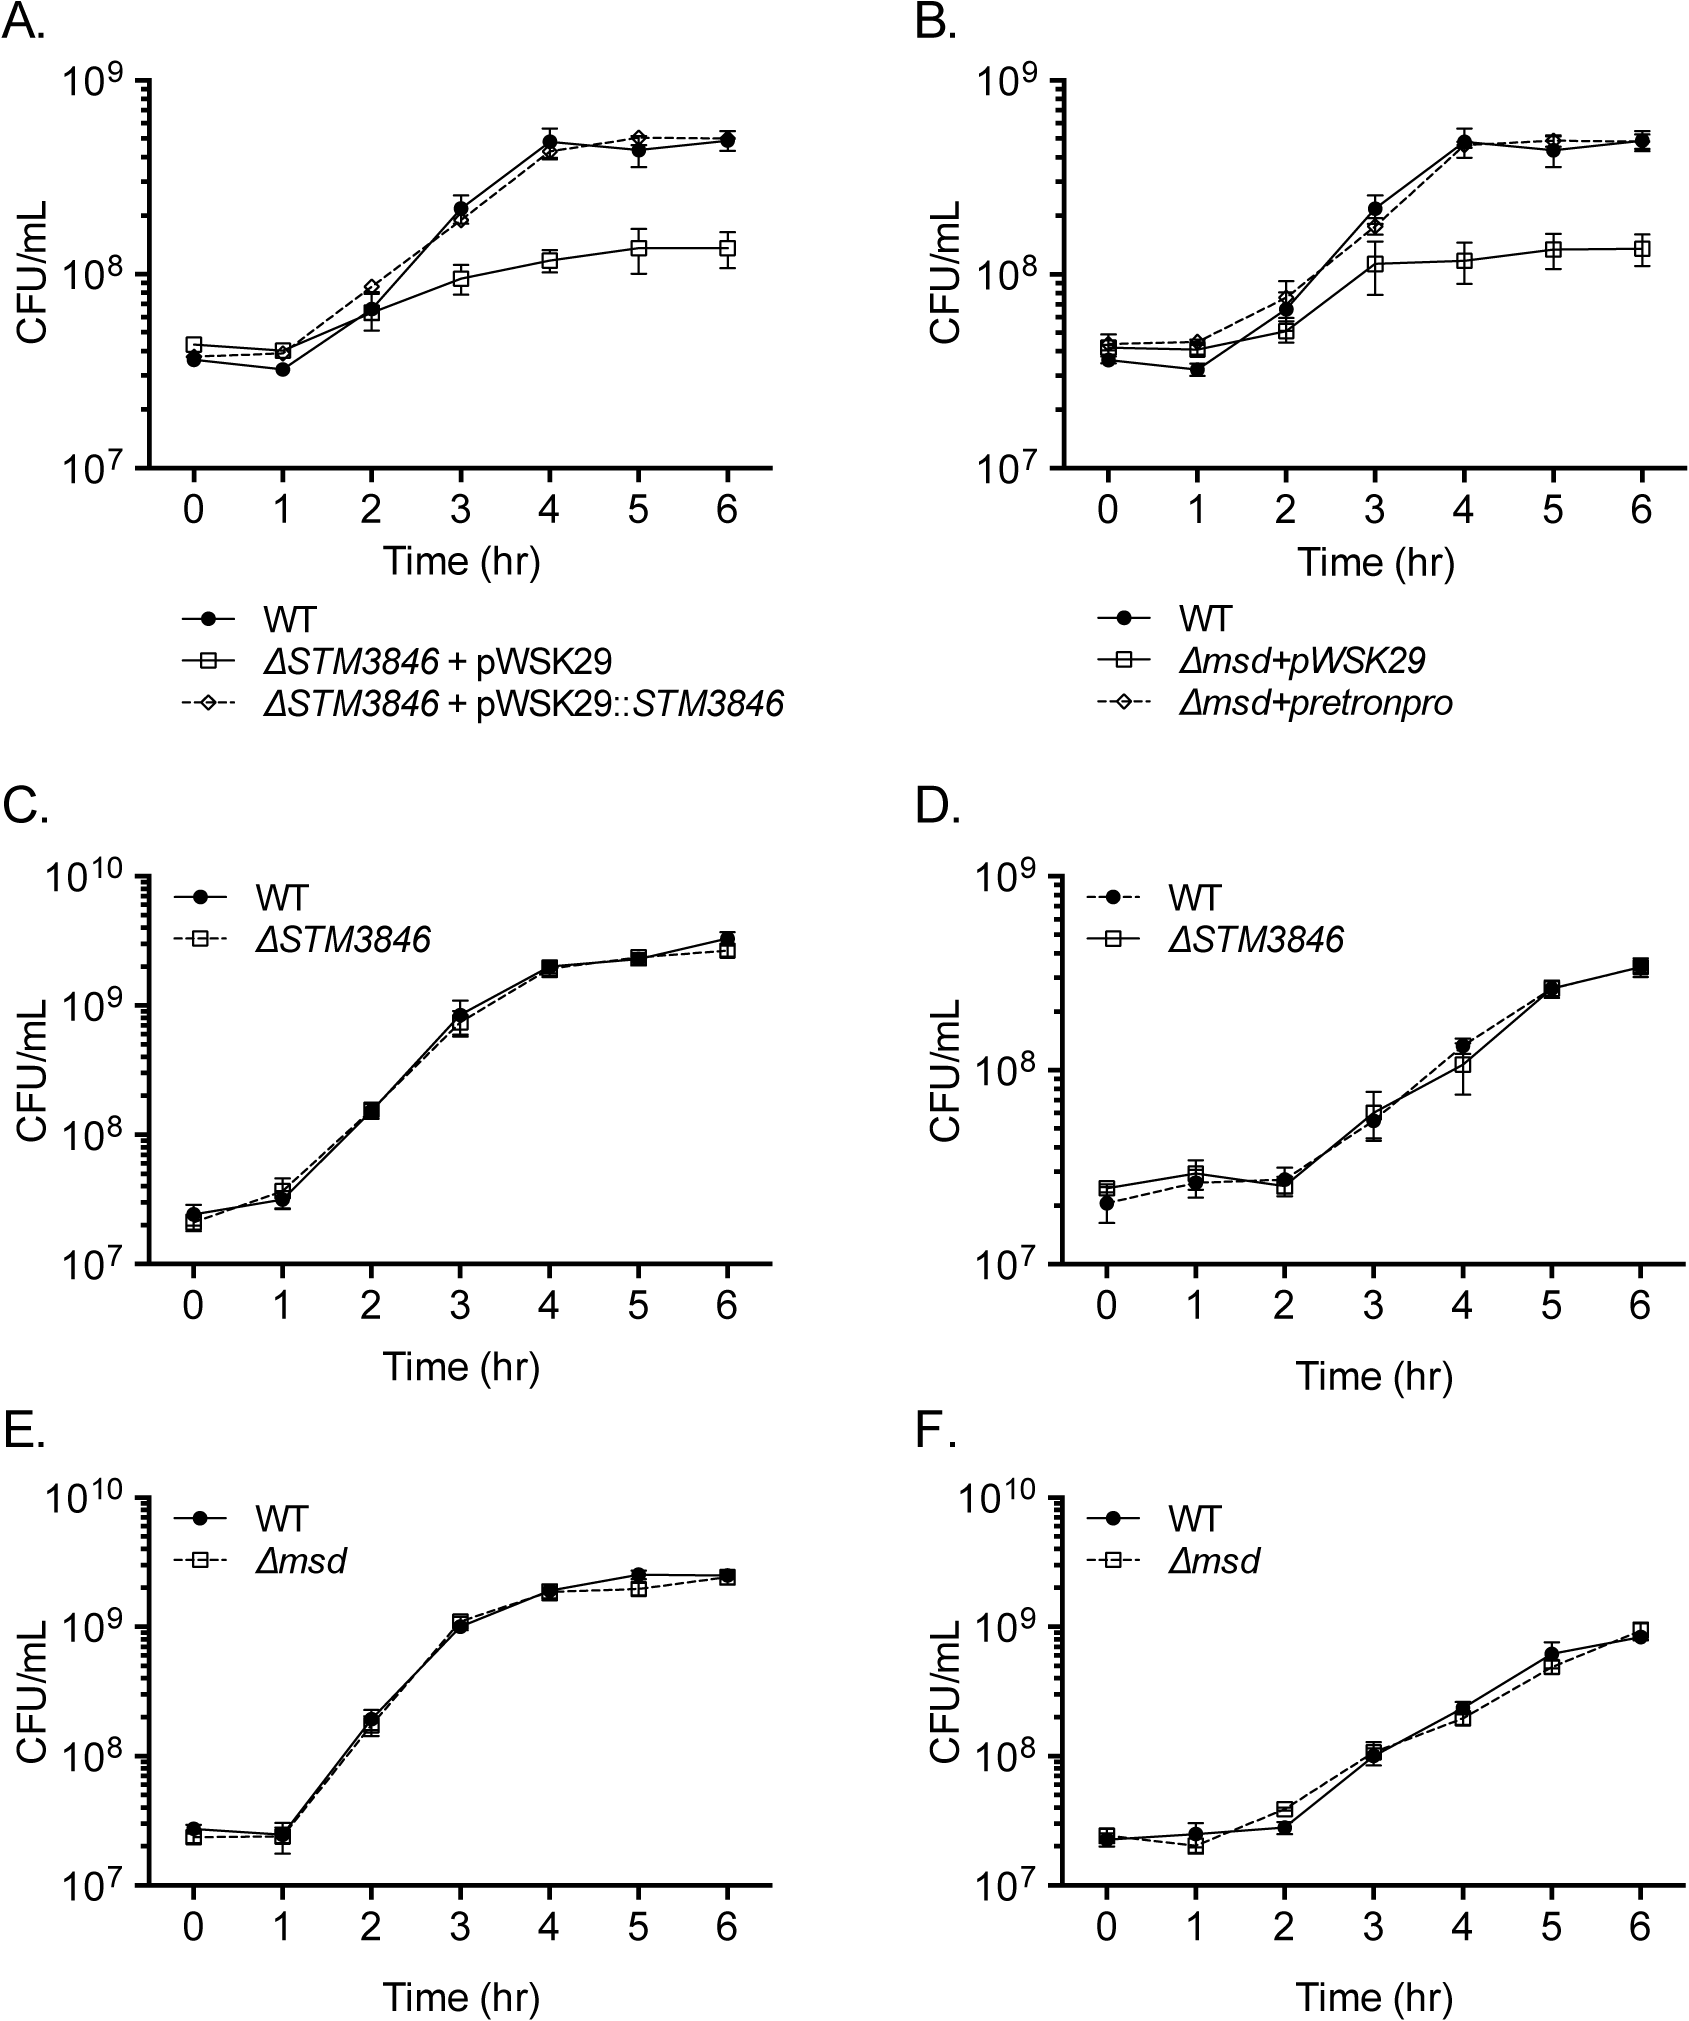 Mutants lacking msDNA are defective for anaerobic growth.